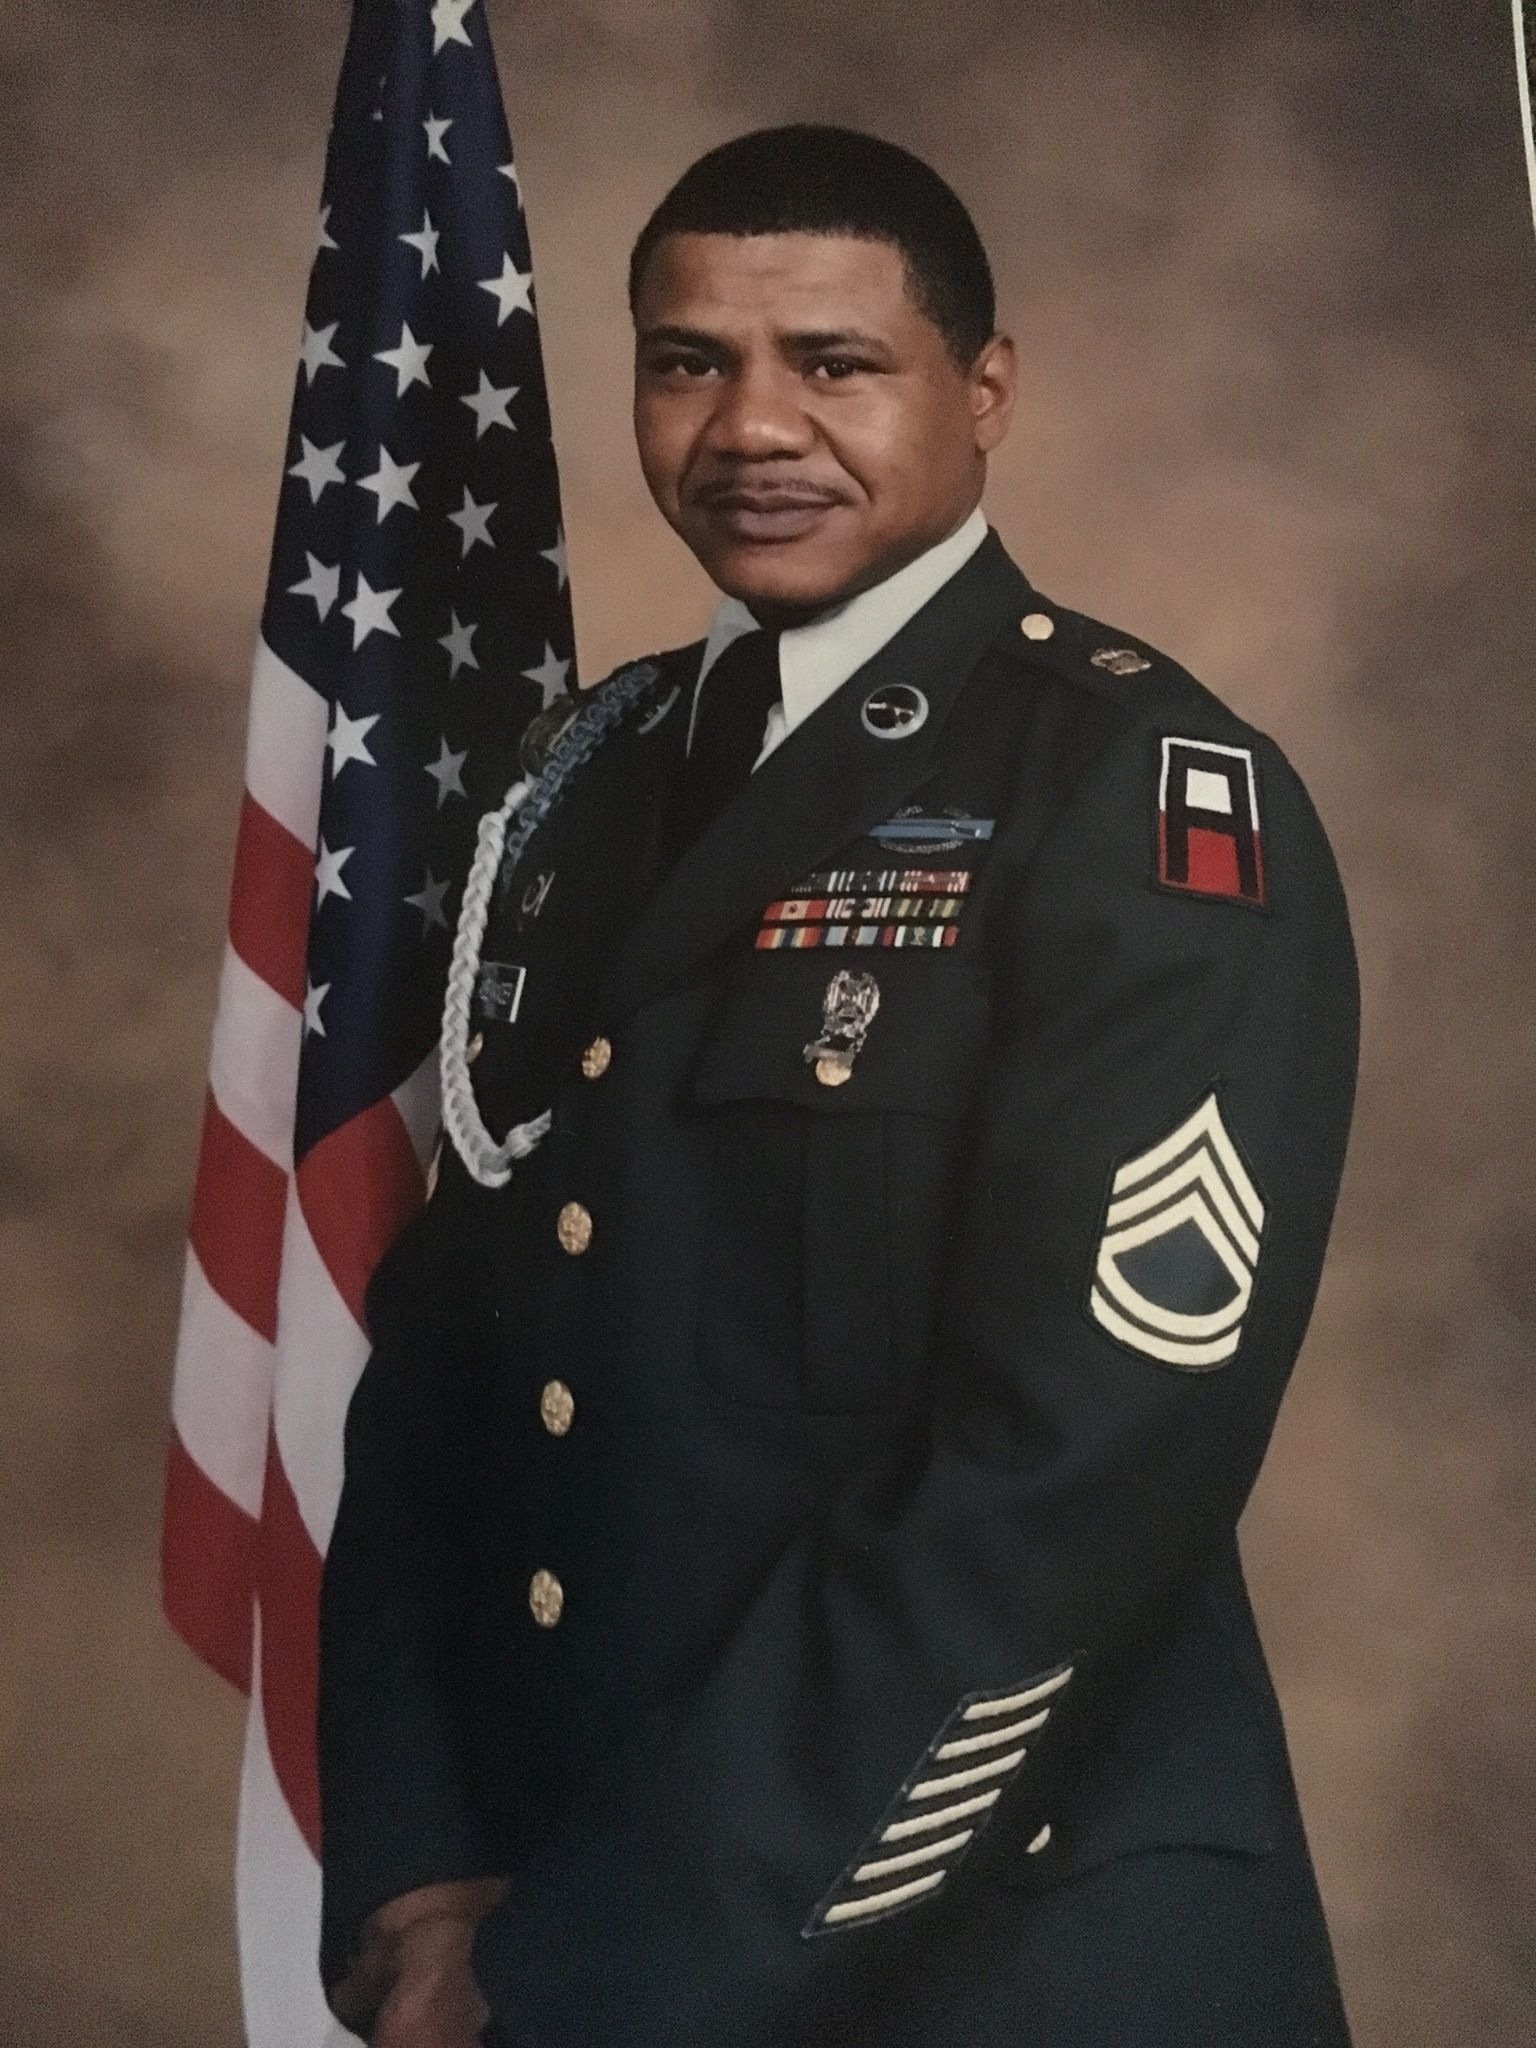 U.S. Army Sgt. Larry Alexander enlisted in 1974 and had a 20-year military career. He served in Germany, Saudi Arabia and Iraq and was stationed at Fort Hood and in Alaska and Massachusetts. He now works for DeSoto ISD.